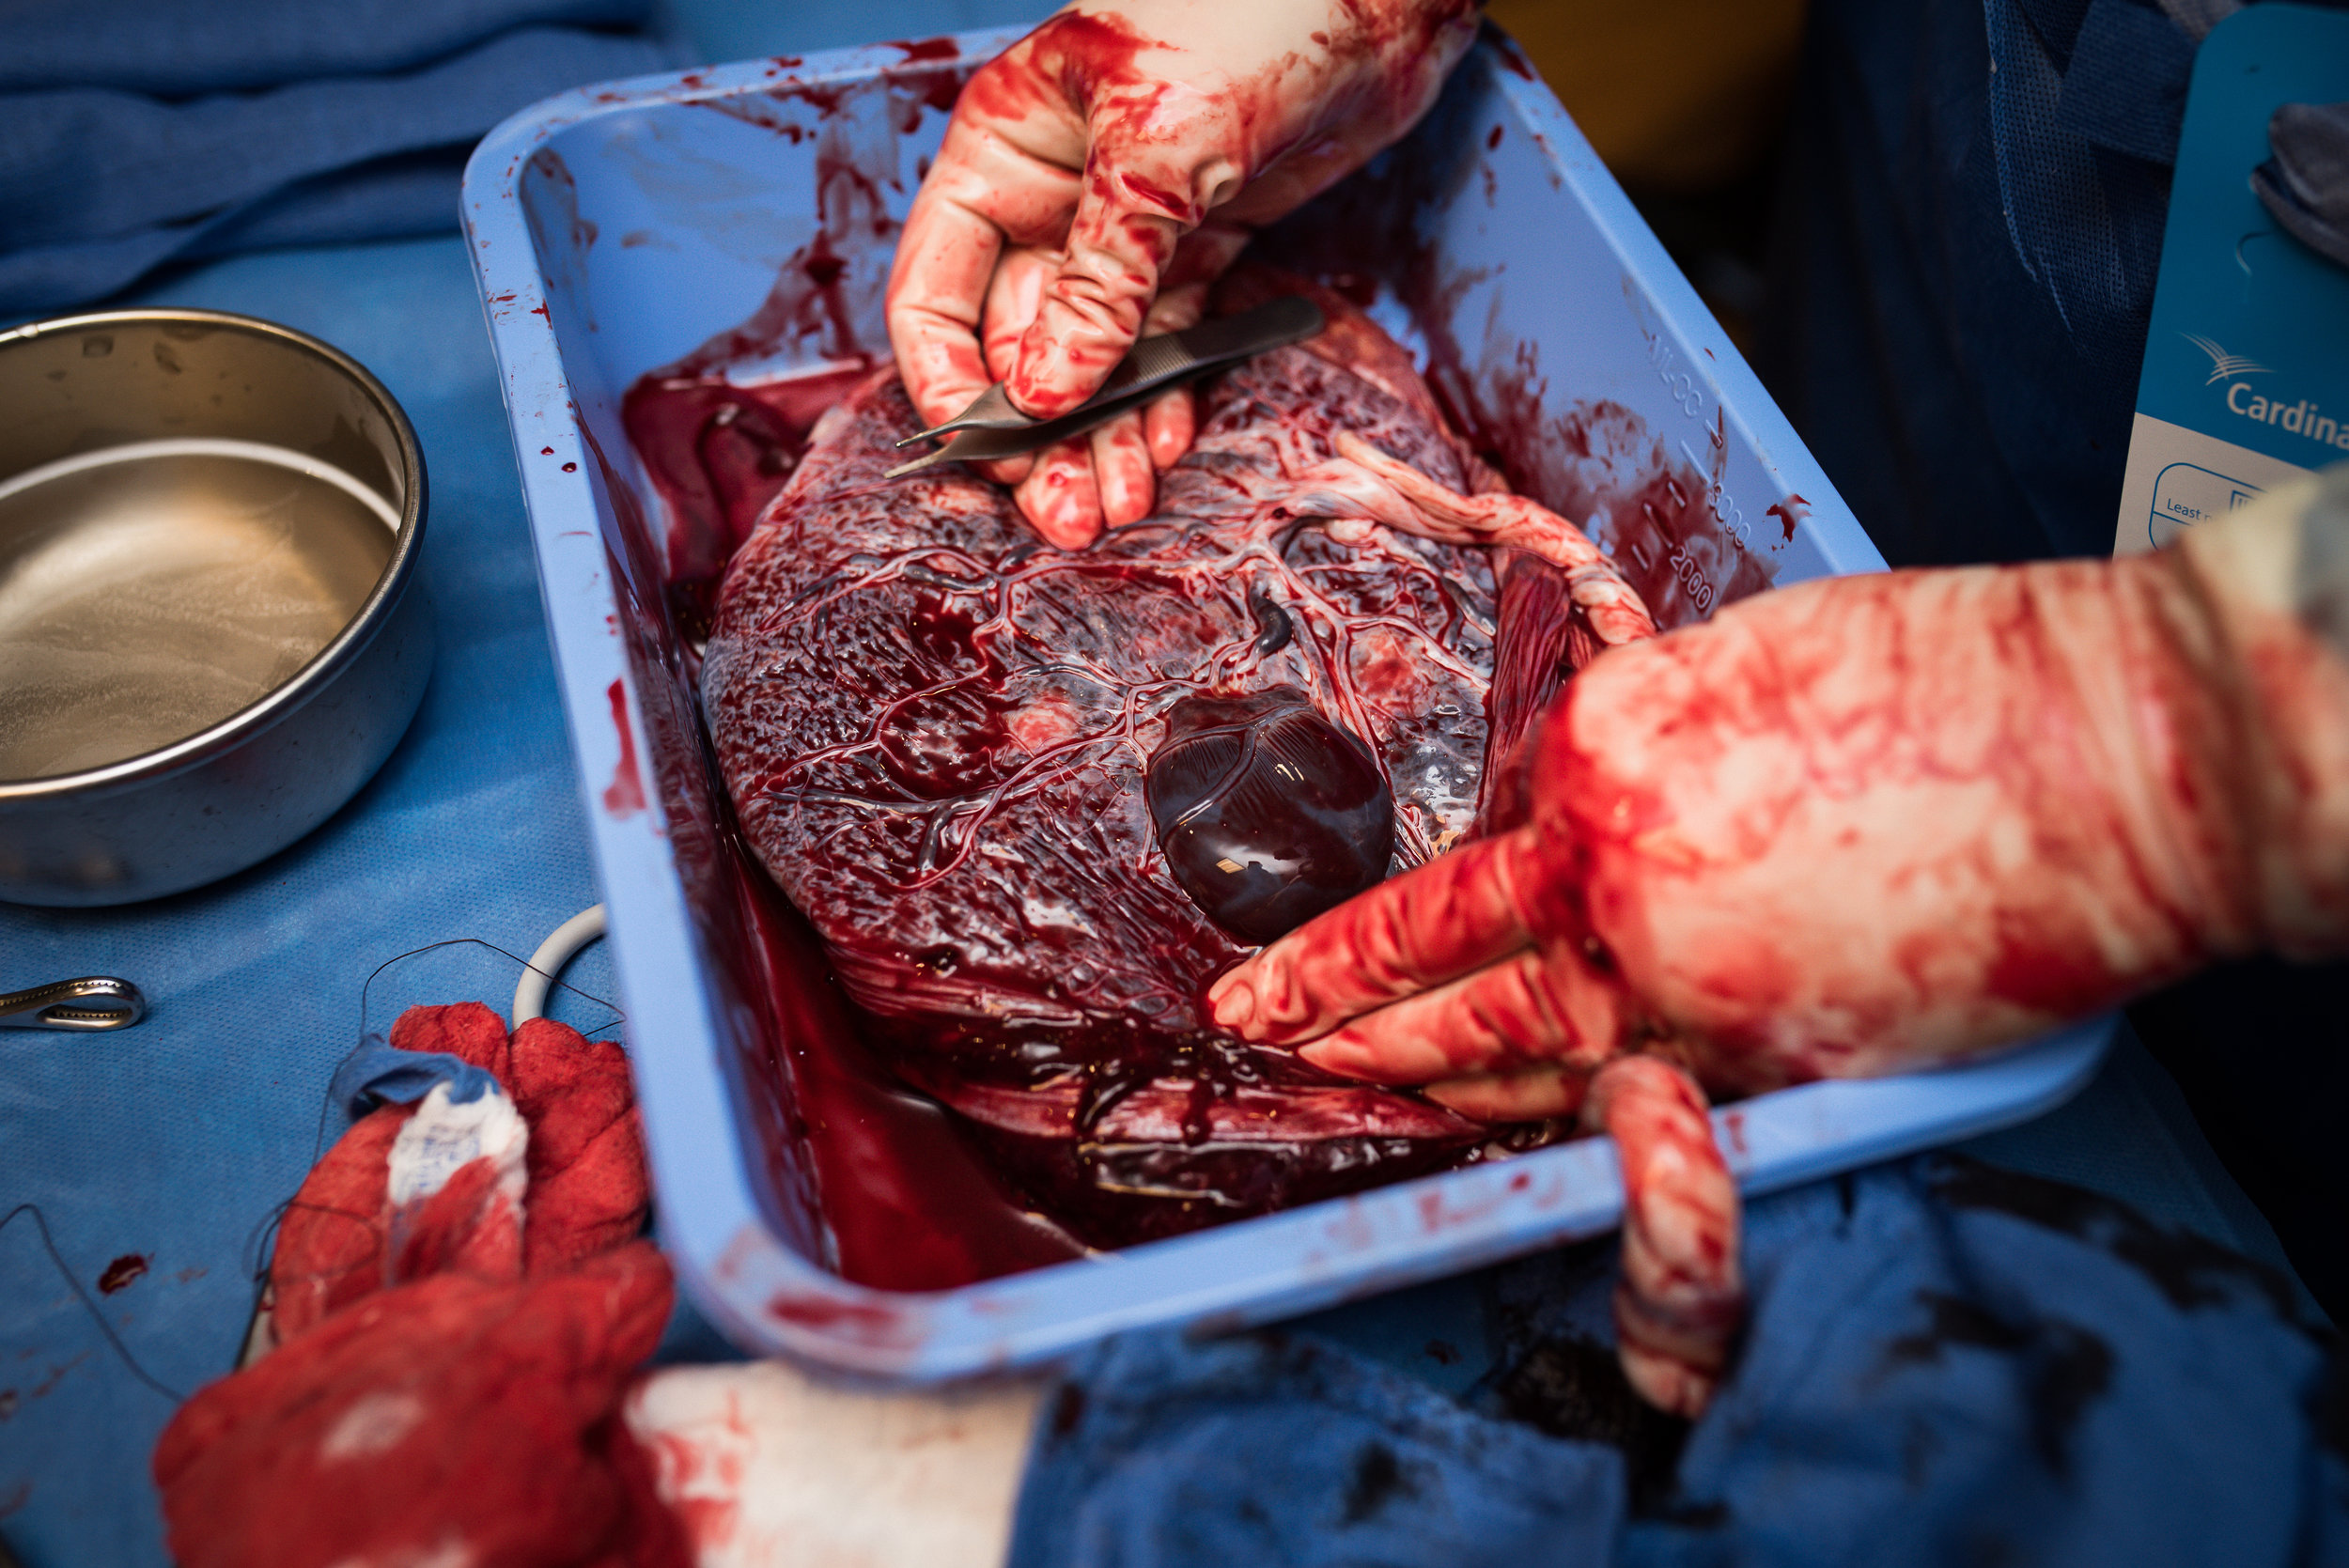 Placenta with blood bubble